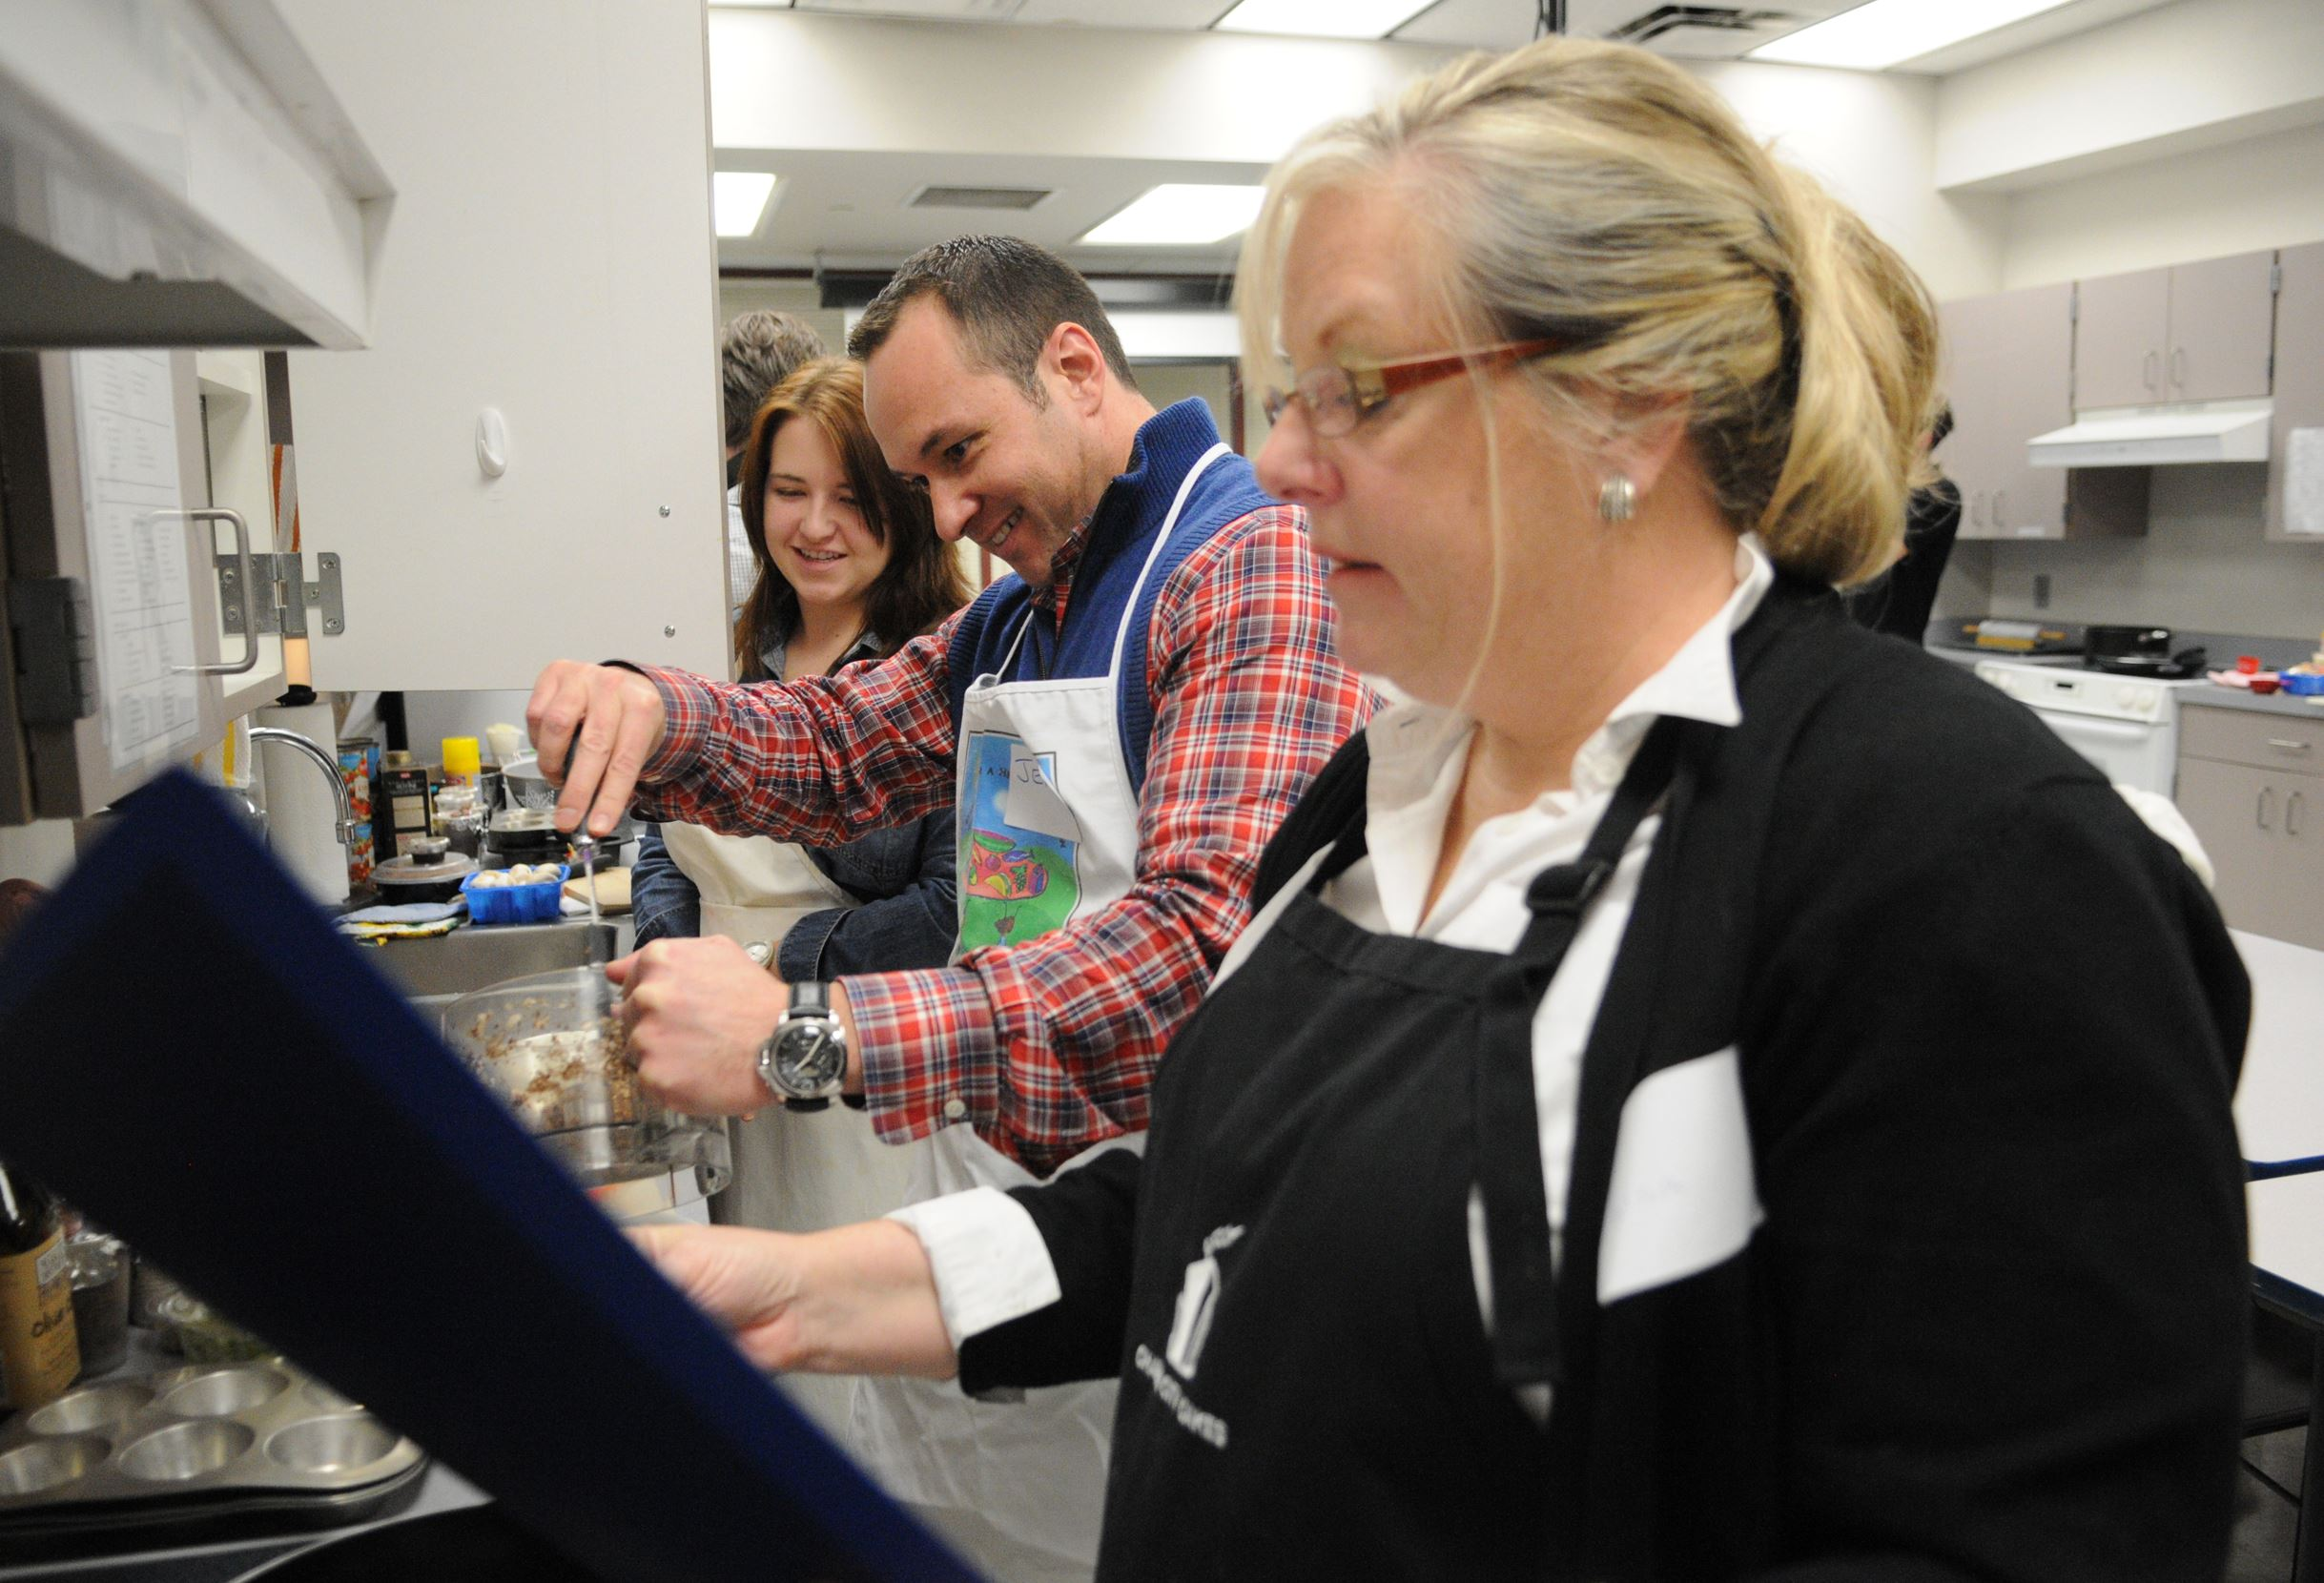 People learn to cook in order to maintain healthy weight